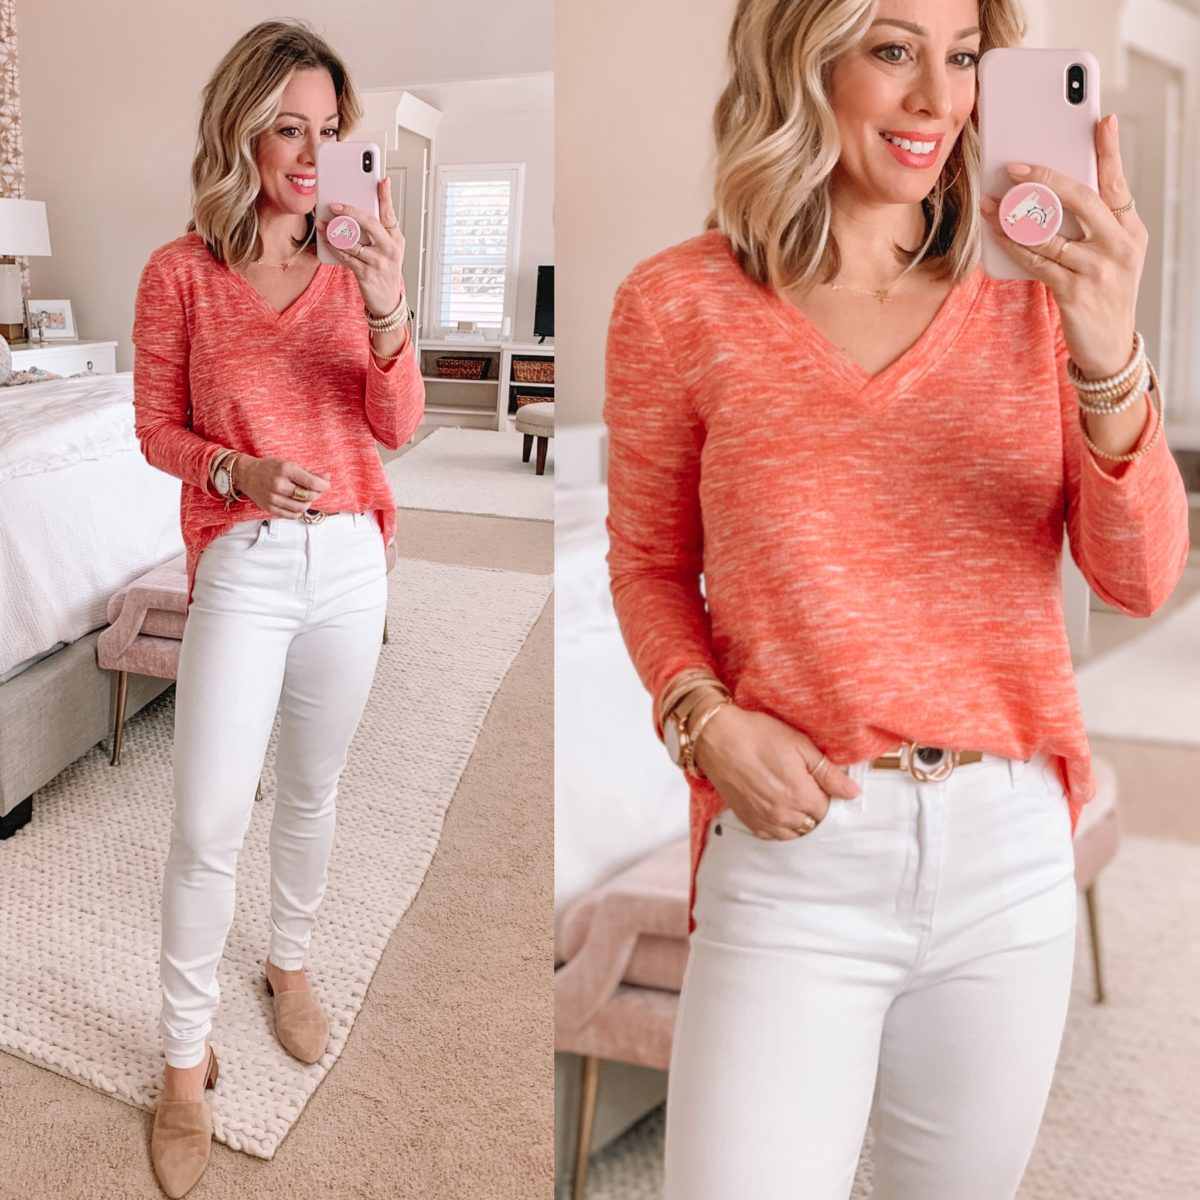 Coral Tuni V-neck Top, White Jeans, Nude Mules